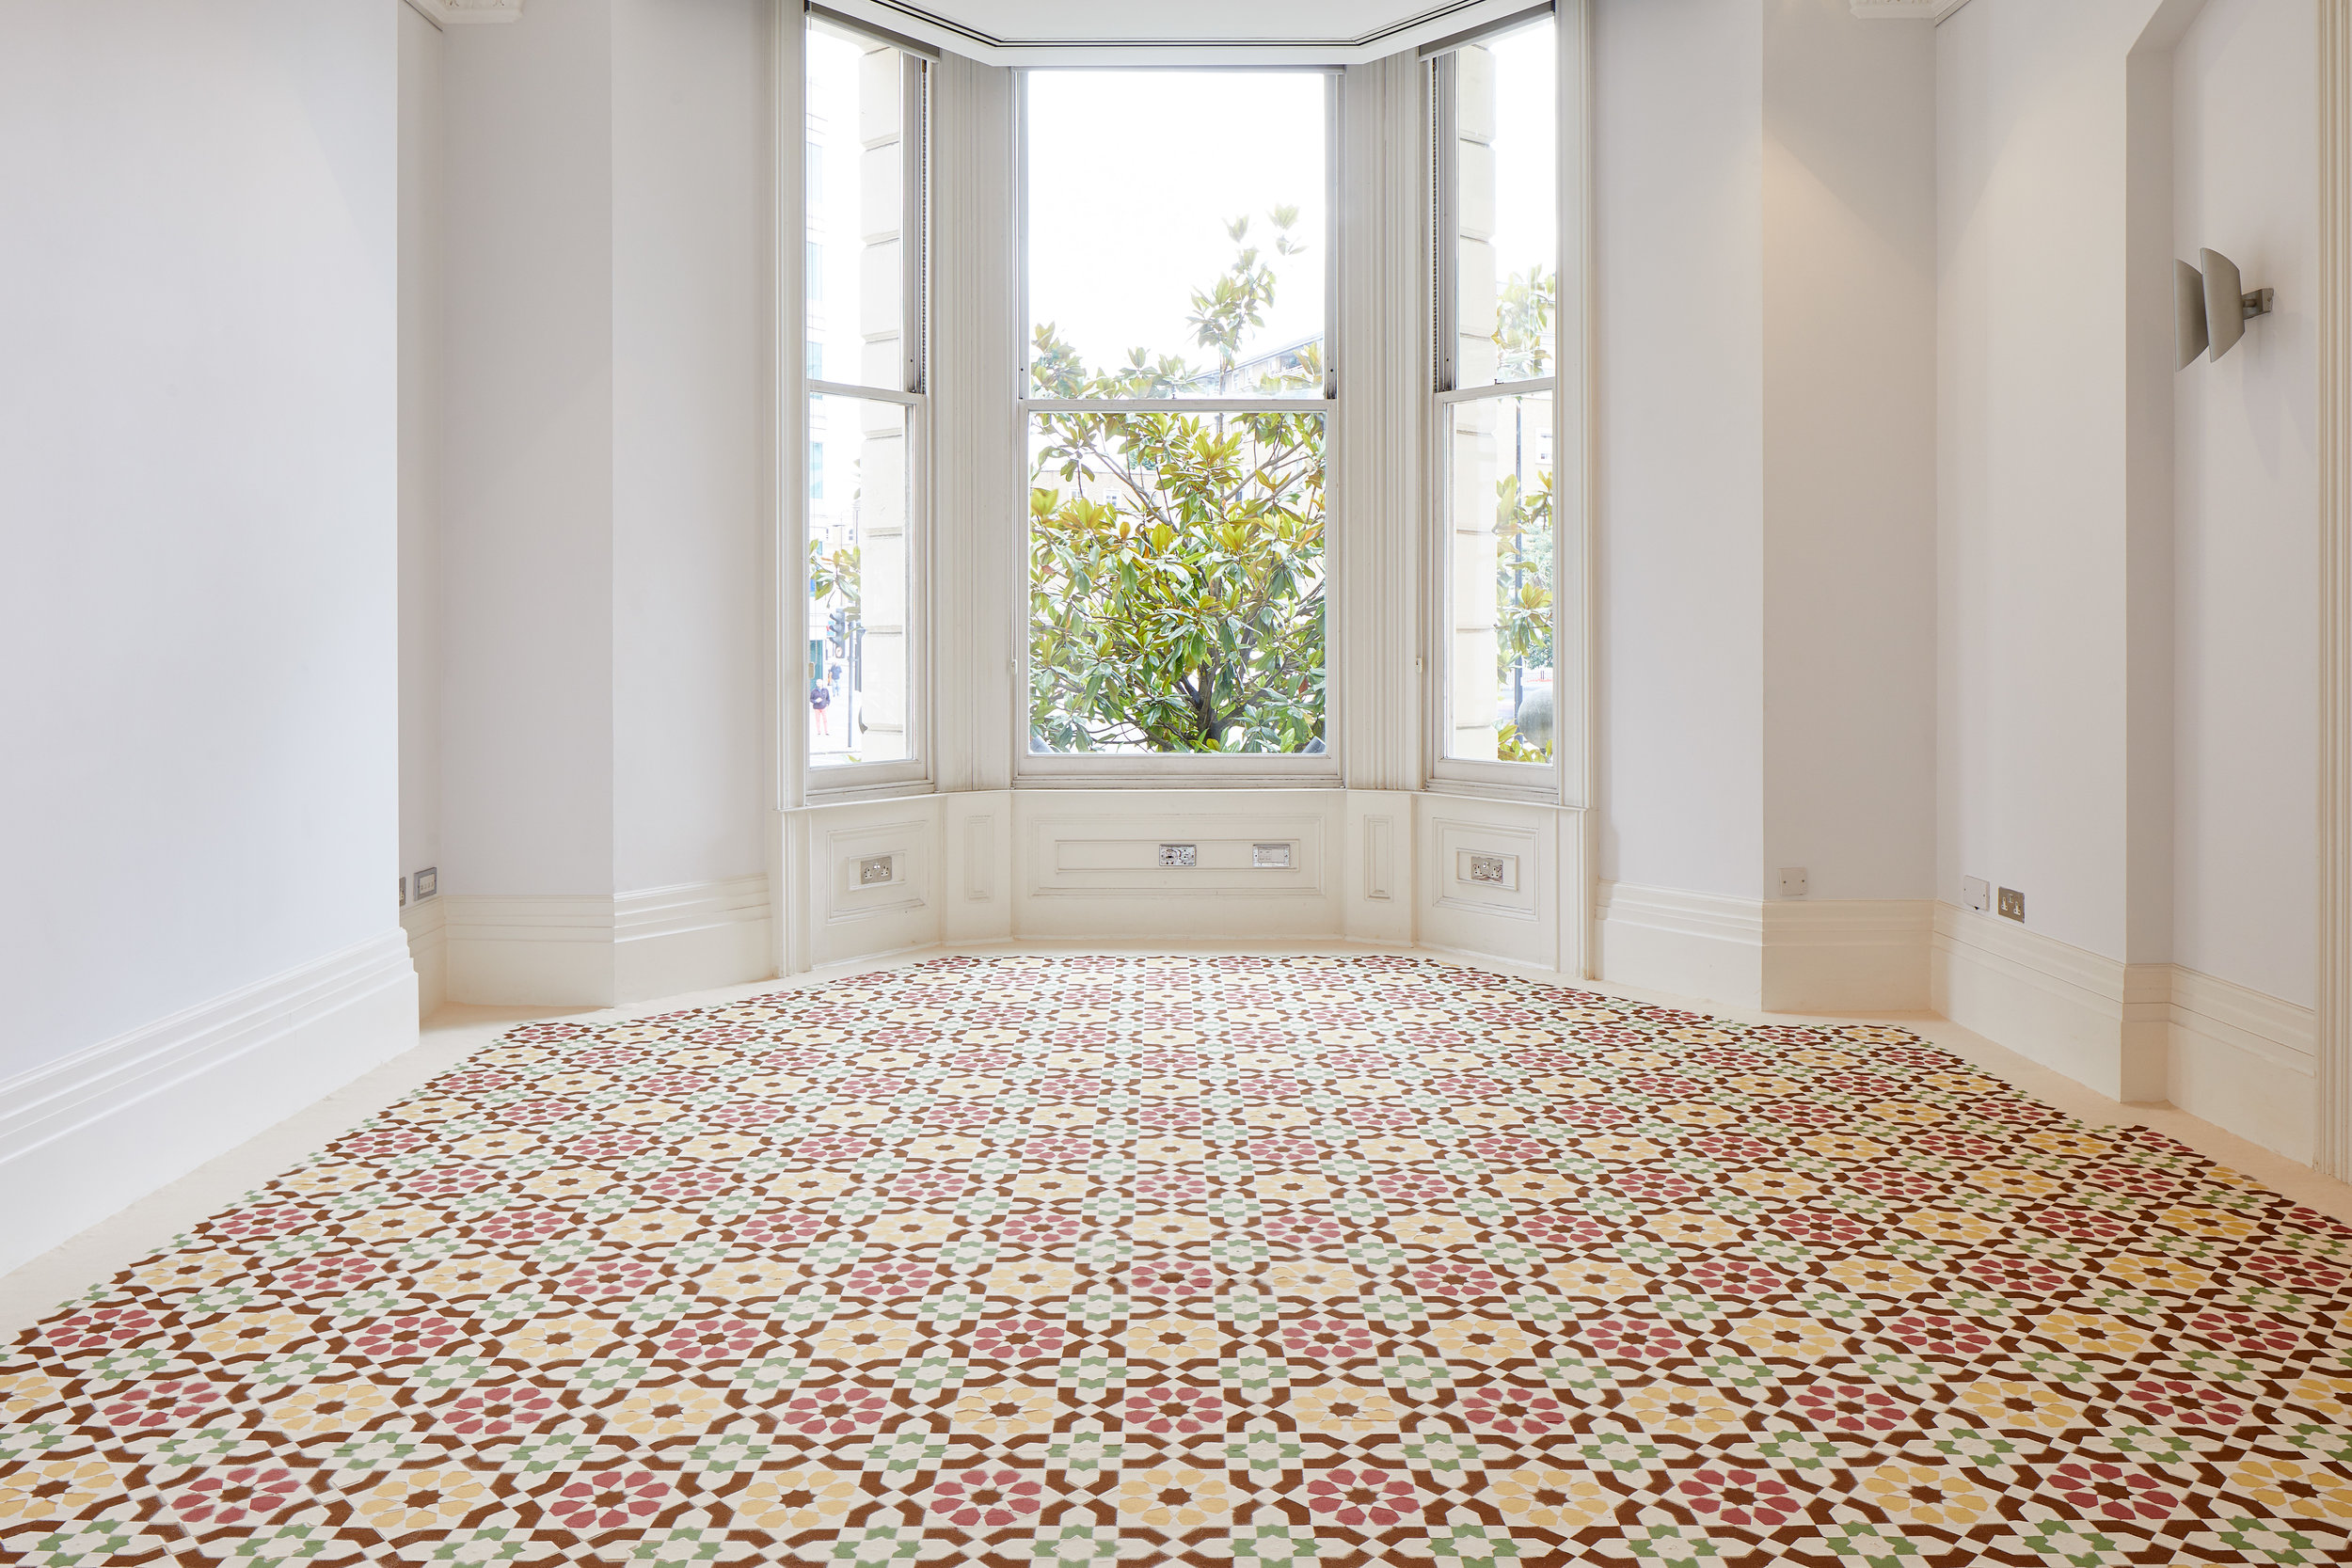 I went away and forgot you. A while ago I remembered. I remembdered I'd forgotten you. I was dreaming. Installation of hand dyed sand (2017) by Dana Awartani. Photo by Andy Stagg. Courtesy of The Mosaic Rooms.